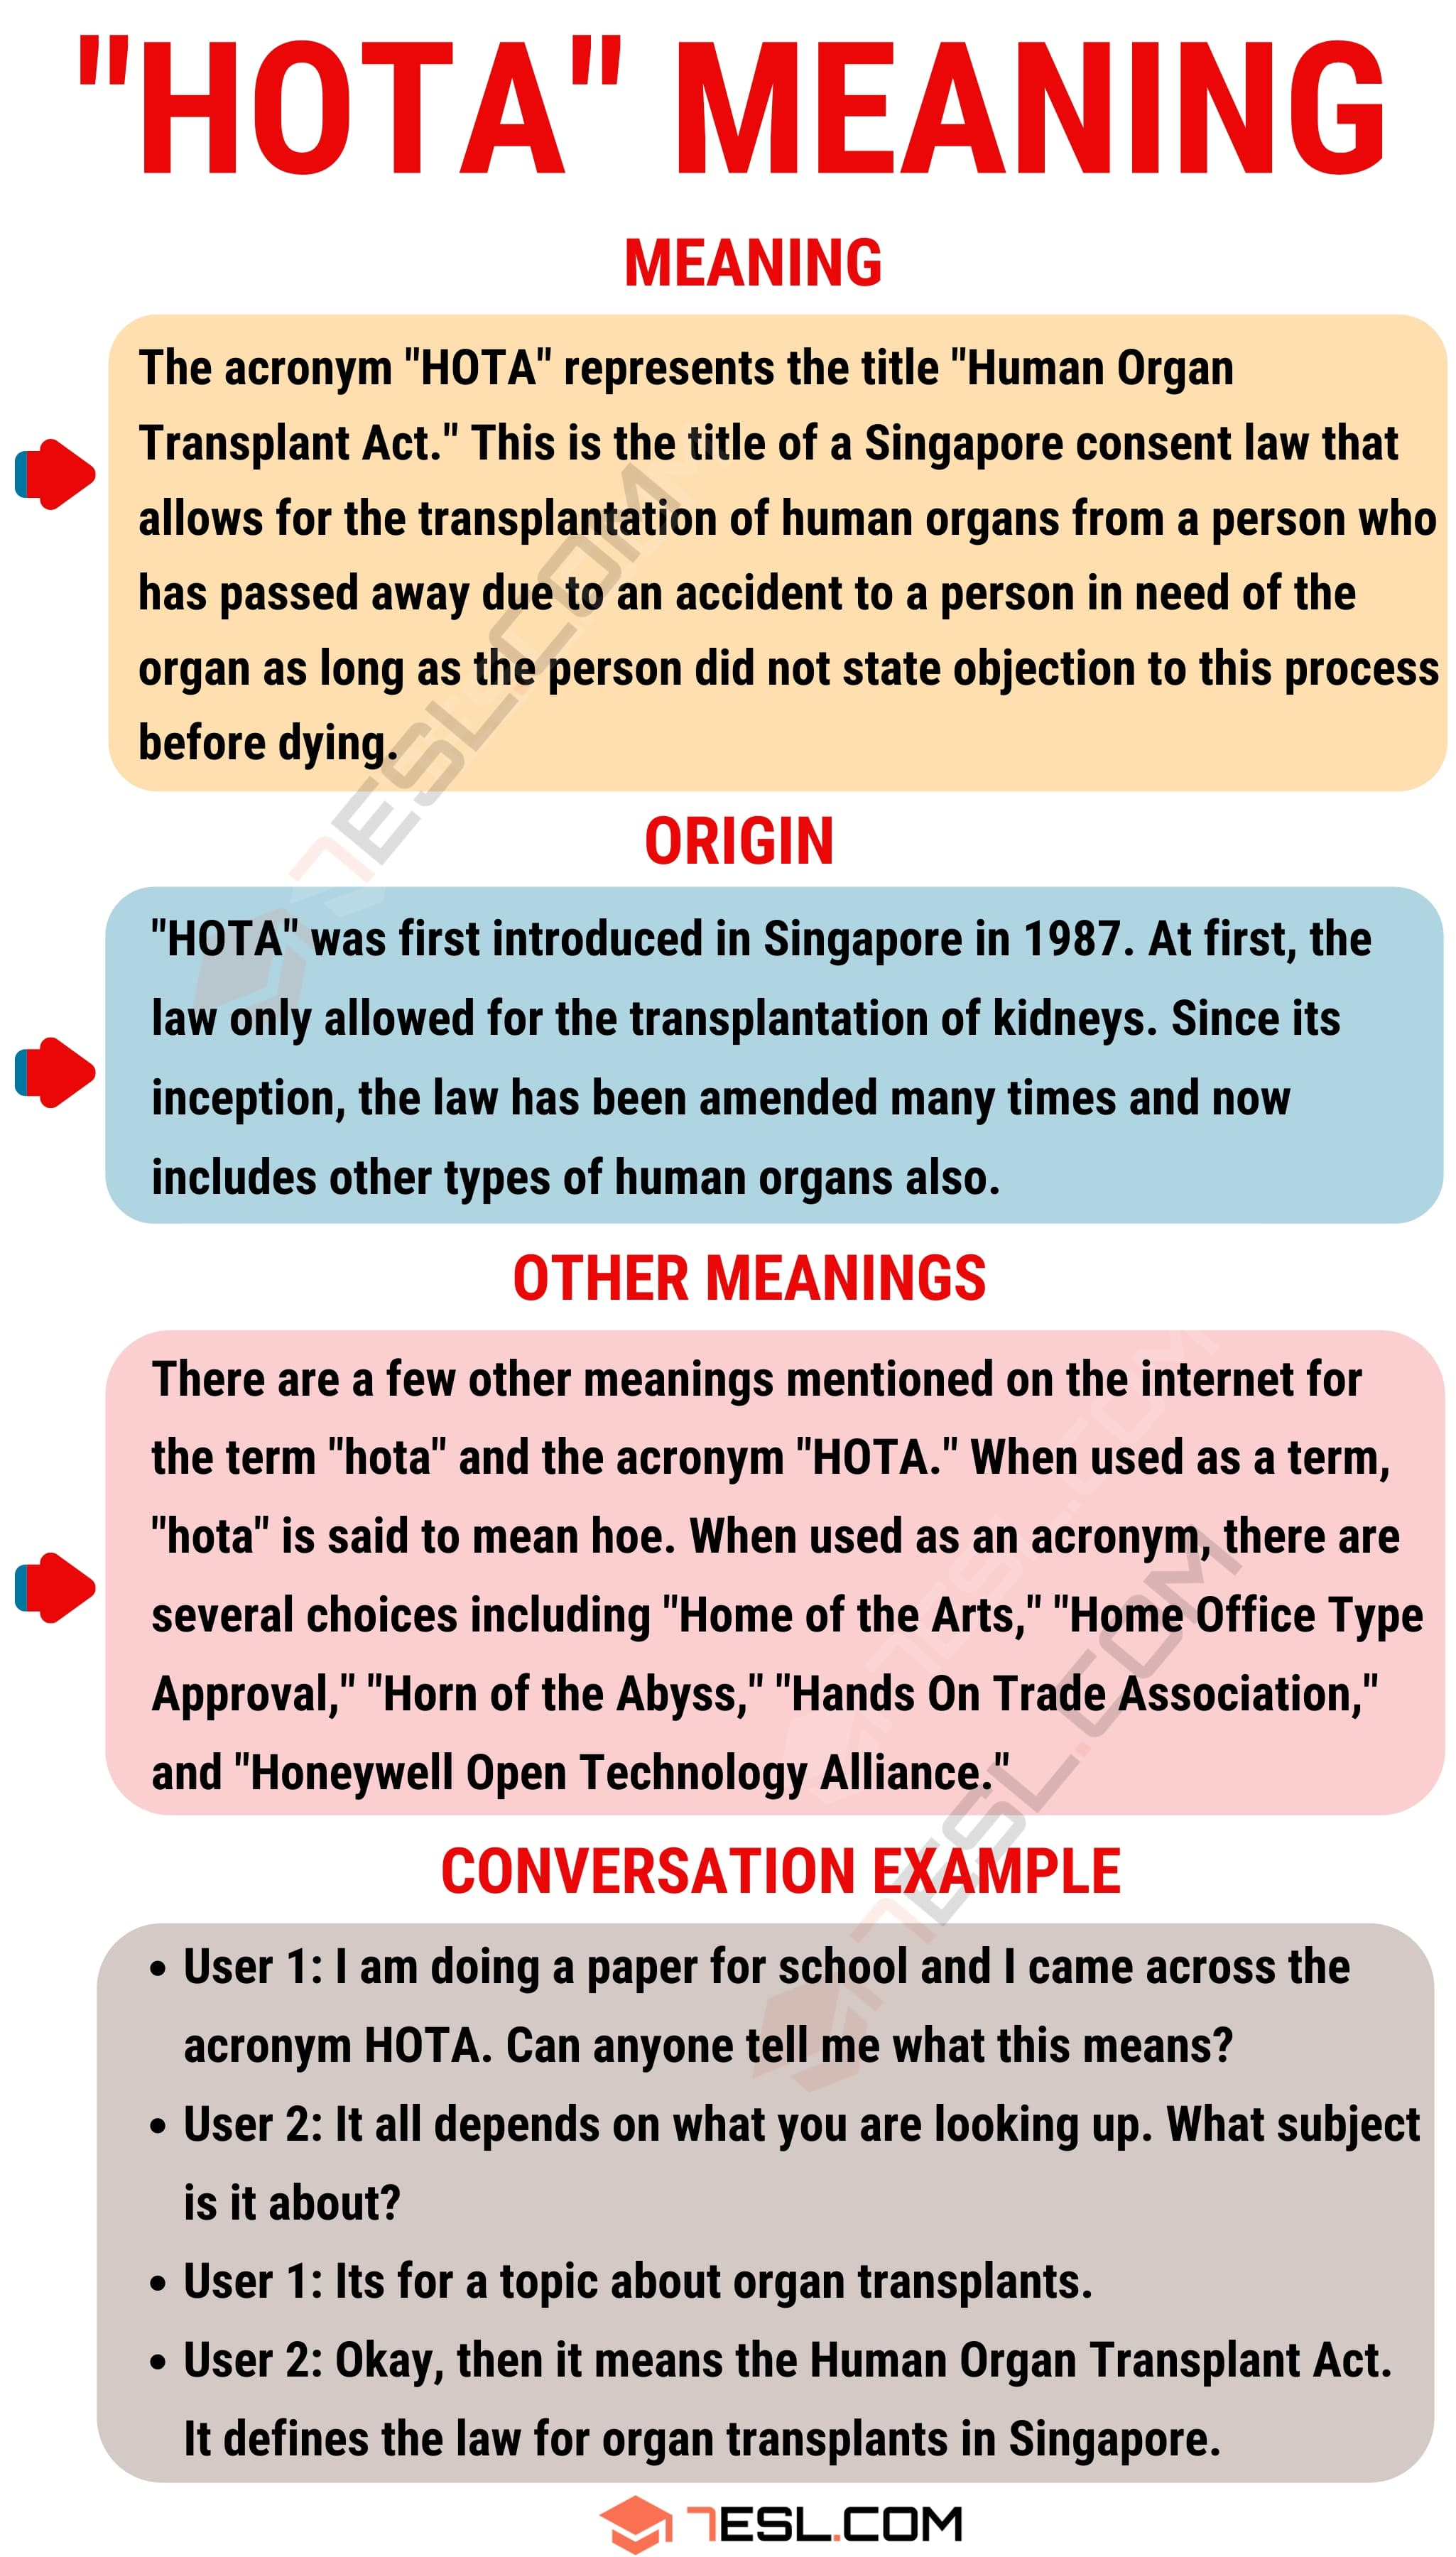 HOTA: What Does HOTA Stand For? Useful Conversations